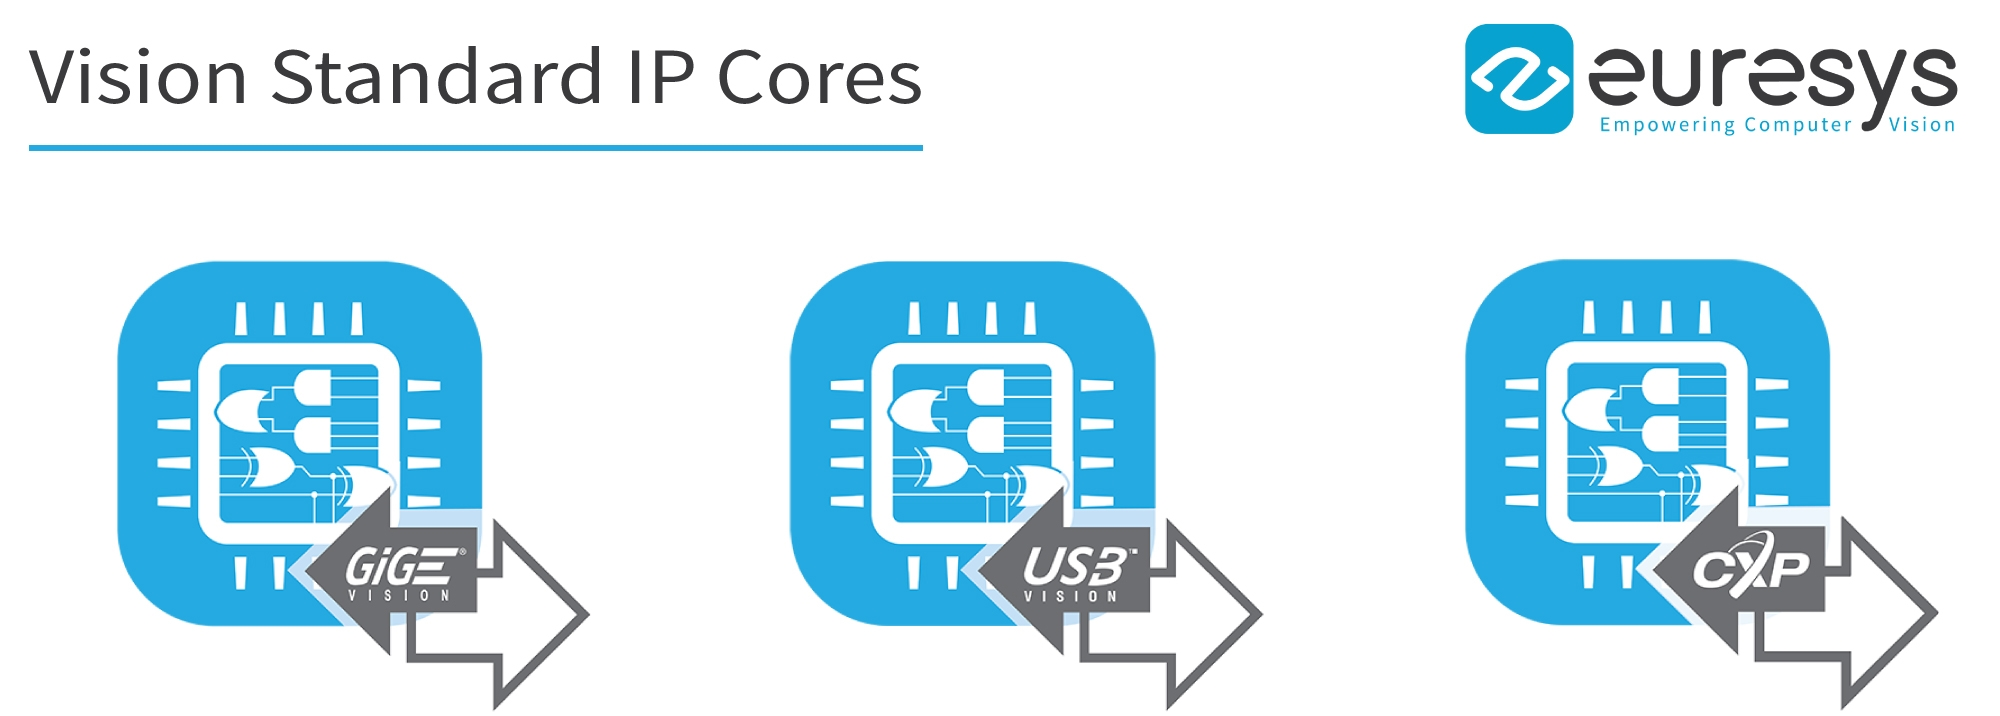 Euresys Transport Layer IP Cores